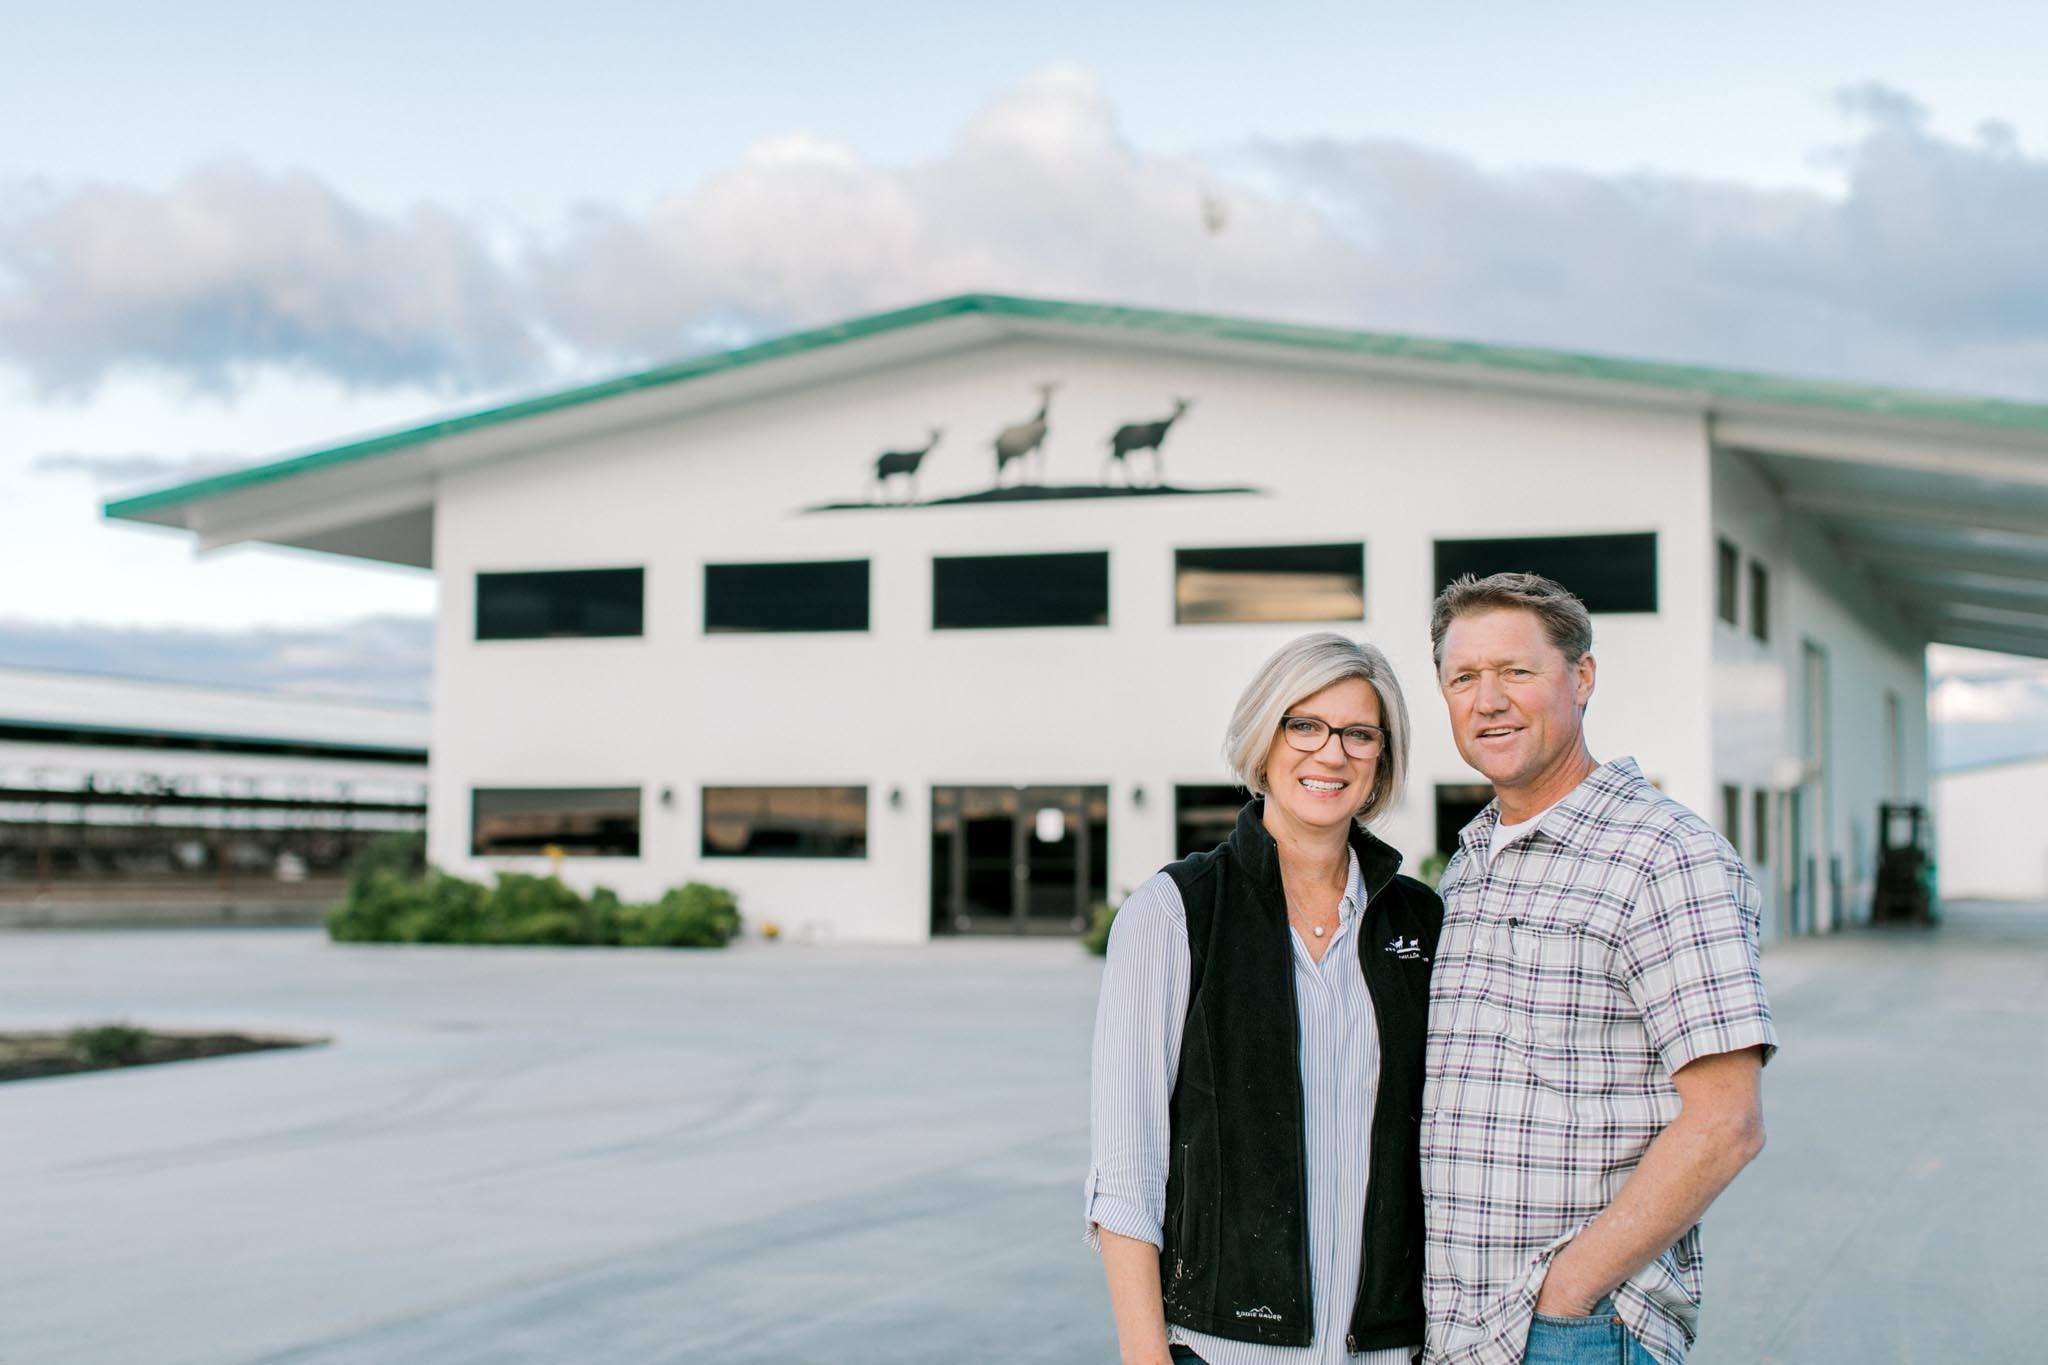 Anneke and Johnnie owners of Summerhill Dairy